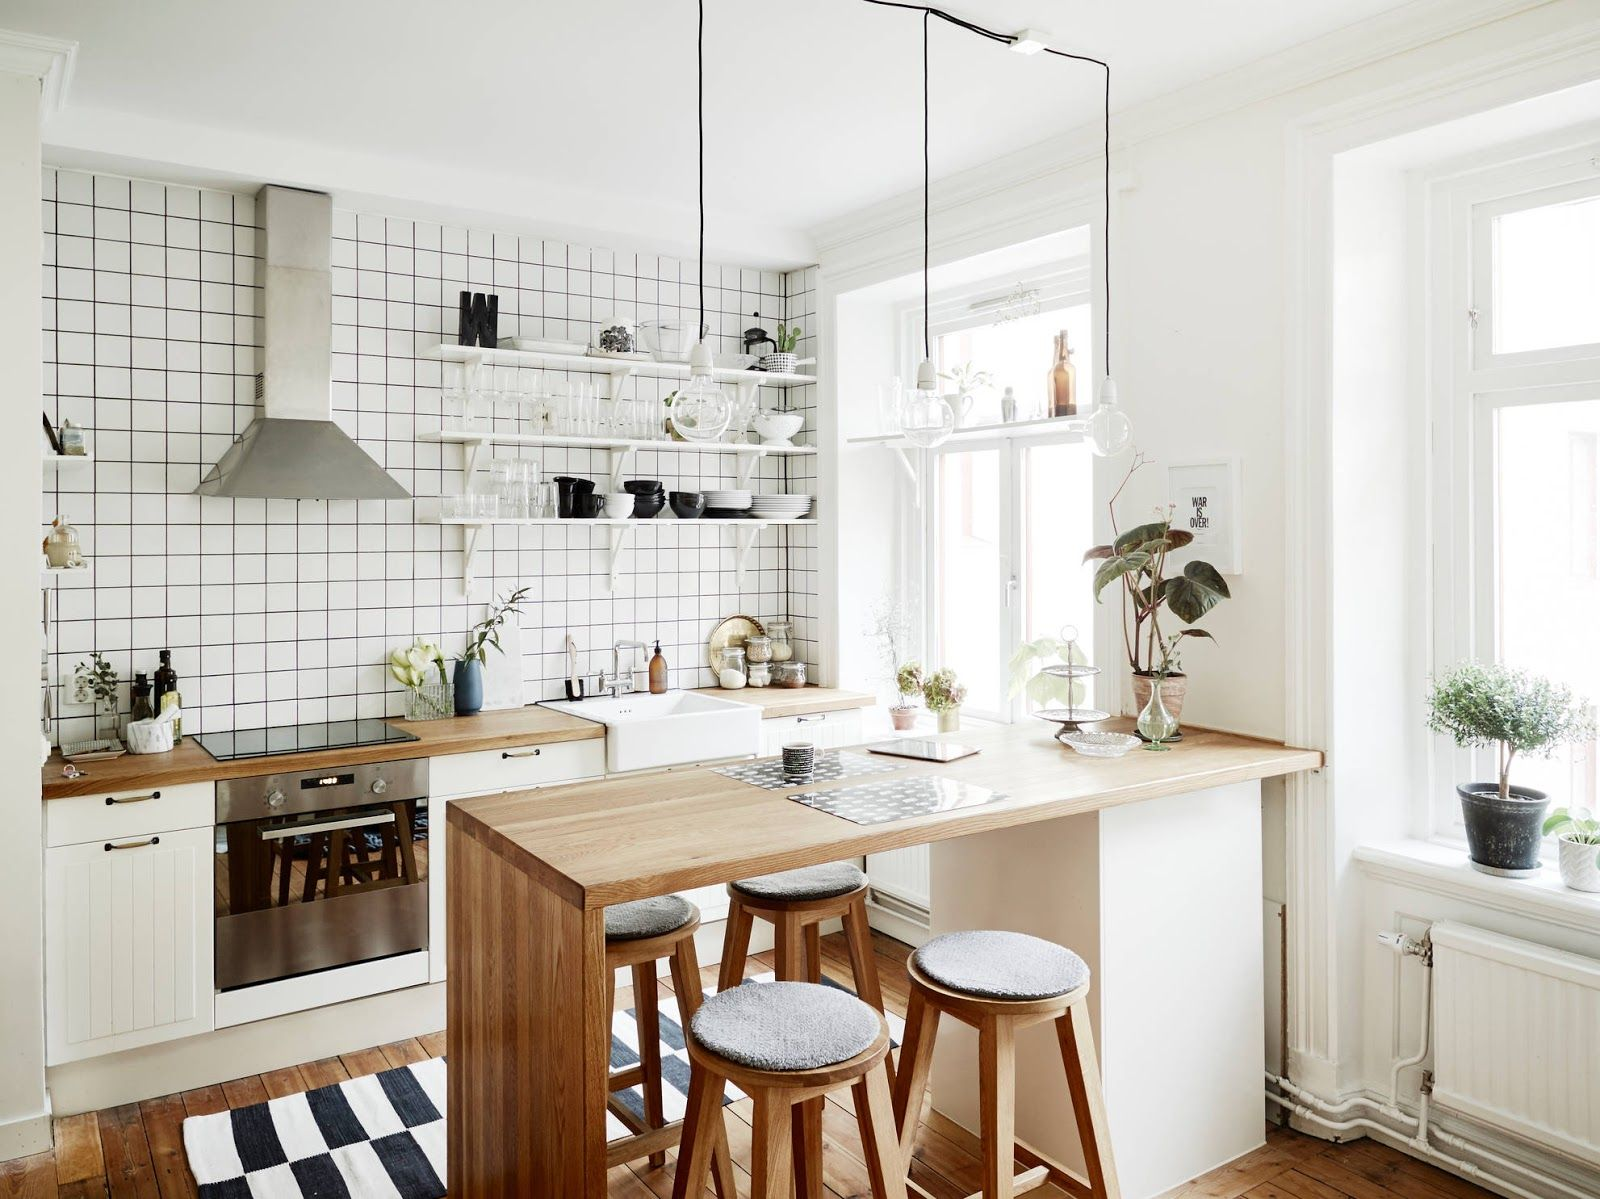 Apartment Kitchens 17 Best Ideas About Small Apartment Kitchen On Pinterest Tiny